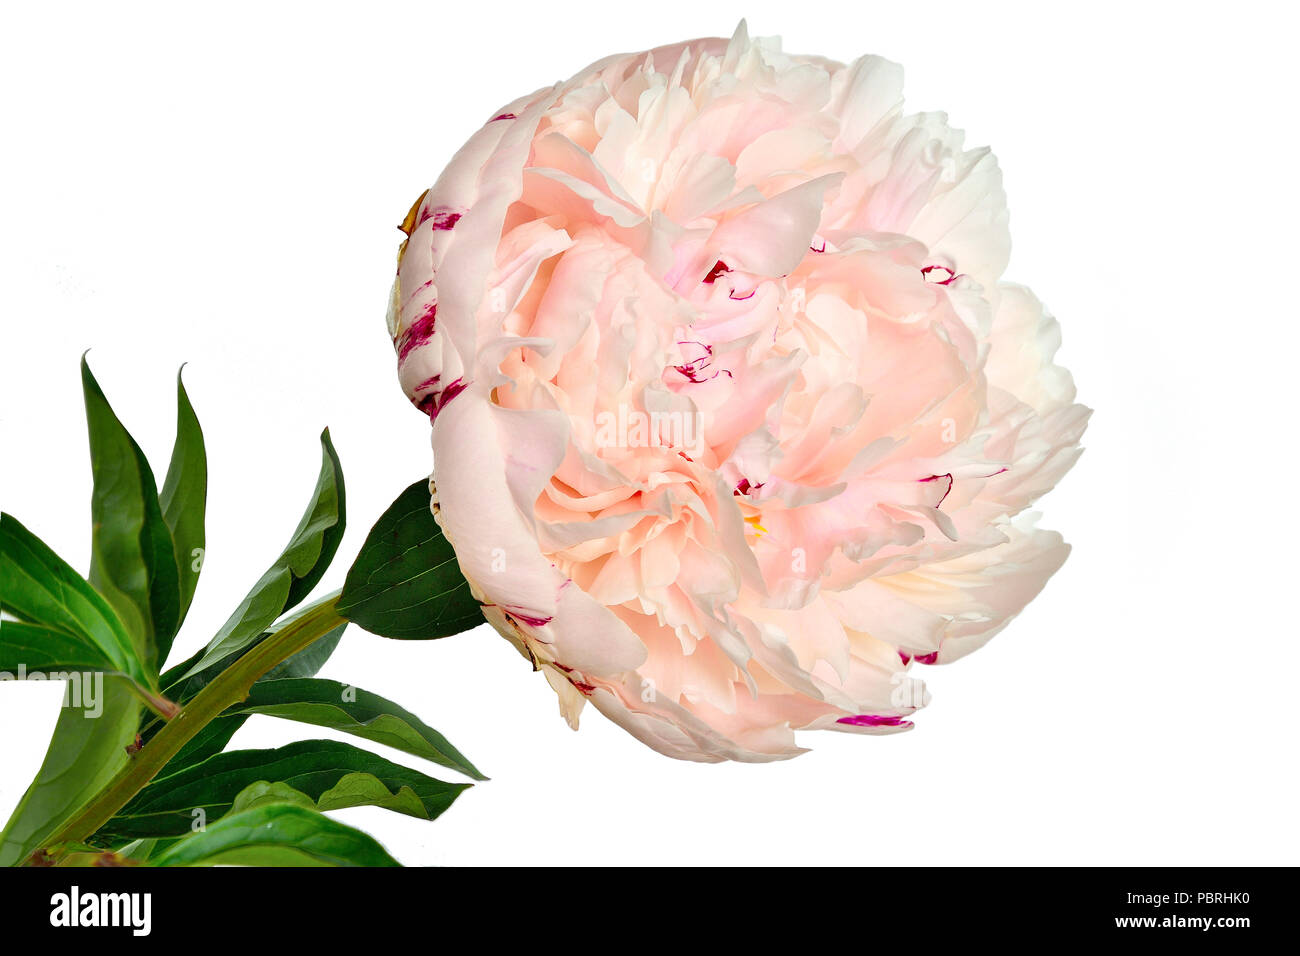 Beautiful gentle white-pink peony close up on a white background isolated with green leaves. Flowers with delicate petals and delicate aroma. Concept  - Stock Image